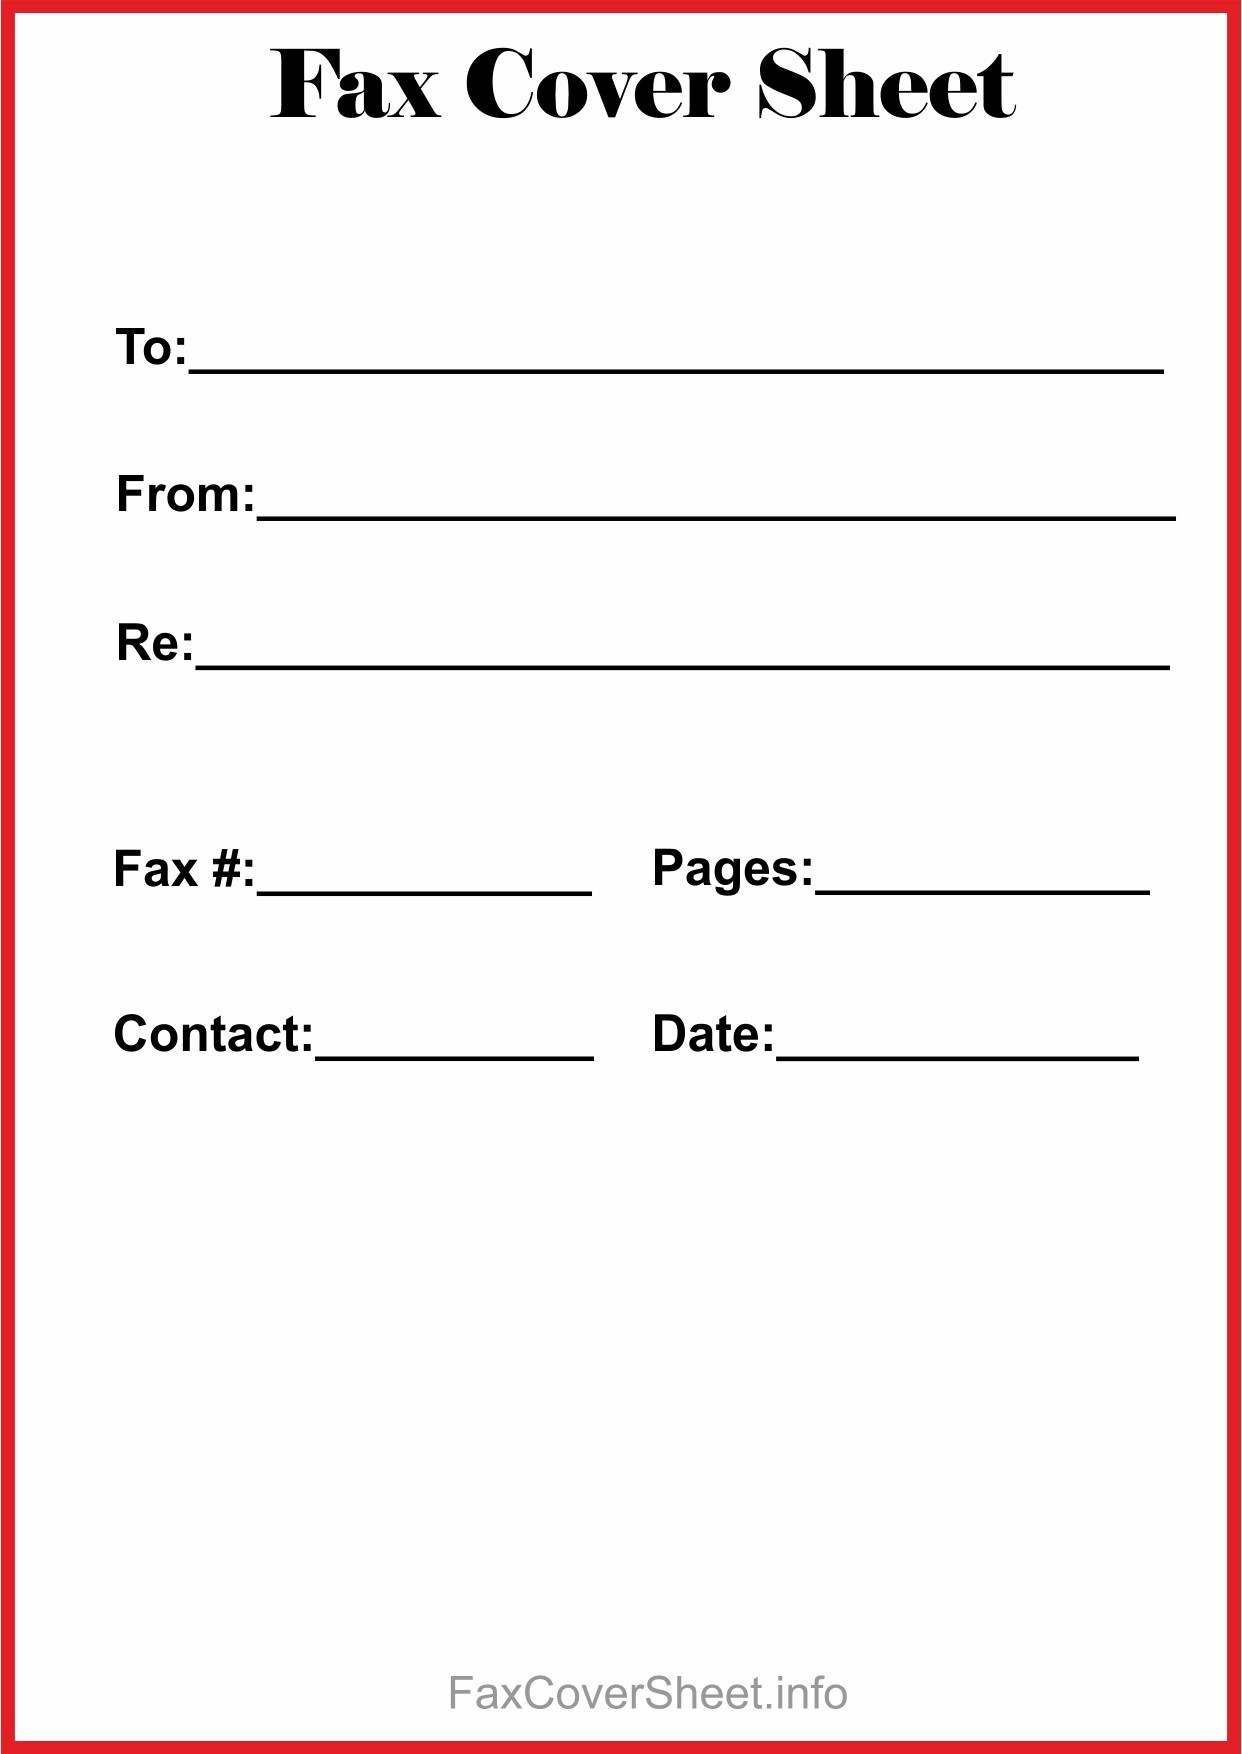 New Print Fax Cover Sheet   Mavensocial.co - Free Printable Cover Letter For Fax